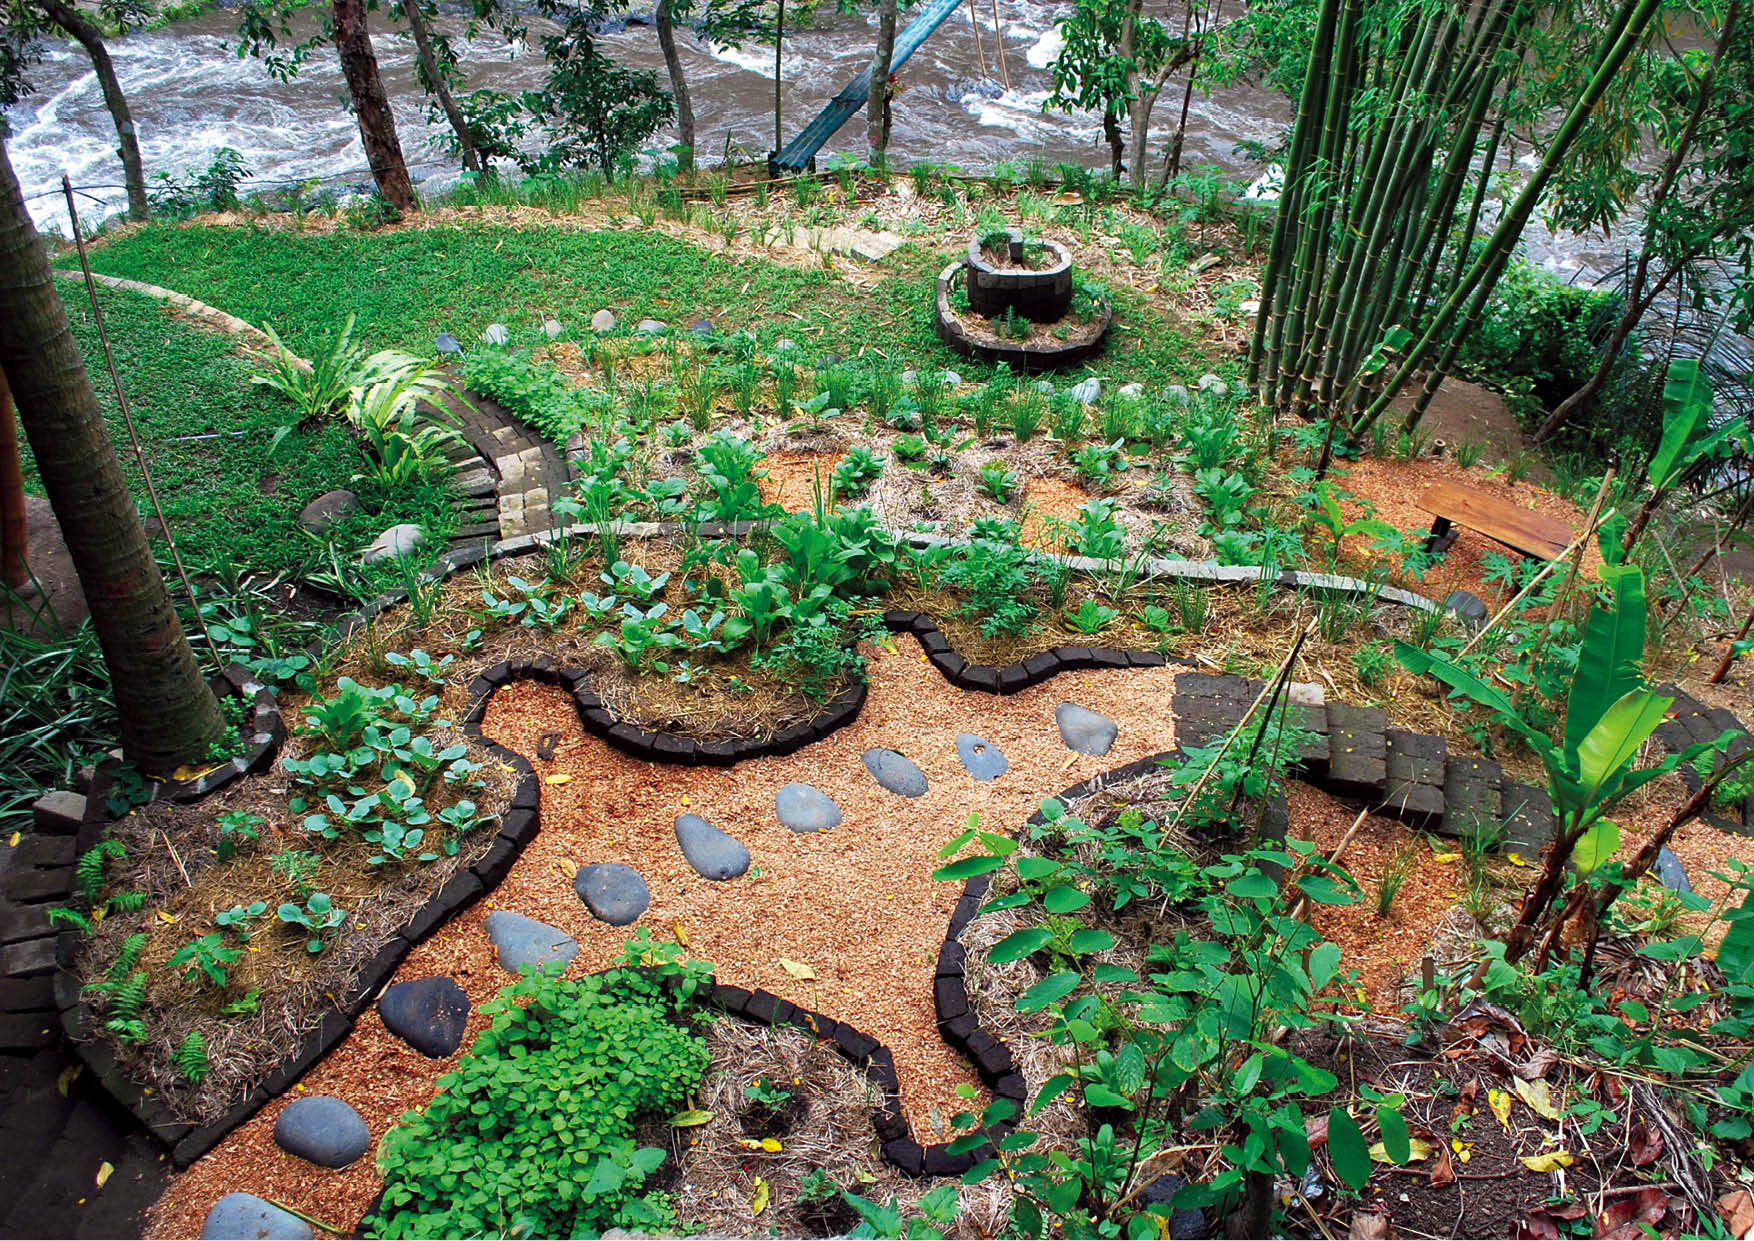 Permaculture Design Principle 7: Design from patterns to details on raised garden bed plans, classic garden plans, butterfly garden plans, woodland garden plans, annual garden plans, small garden plans, raised garden layout plans, round garden plans, gothic garden plans, window garden plans, rectangle garden plans, build garden cart plans, deer resistant garden plans, flower garden plans, survival garden plans, chinese garden plans, sensory garden plans, front garden plans, kitchen garden plans, straw bale garden plans,